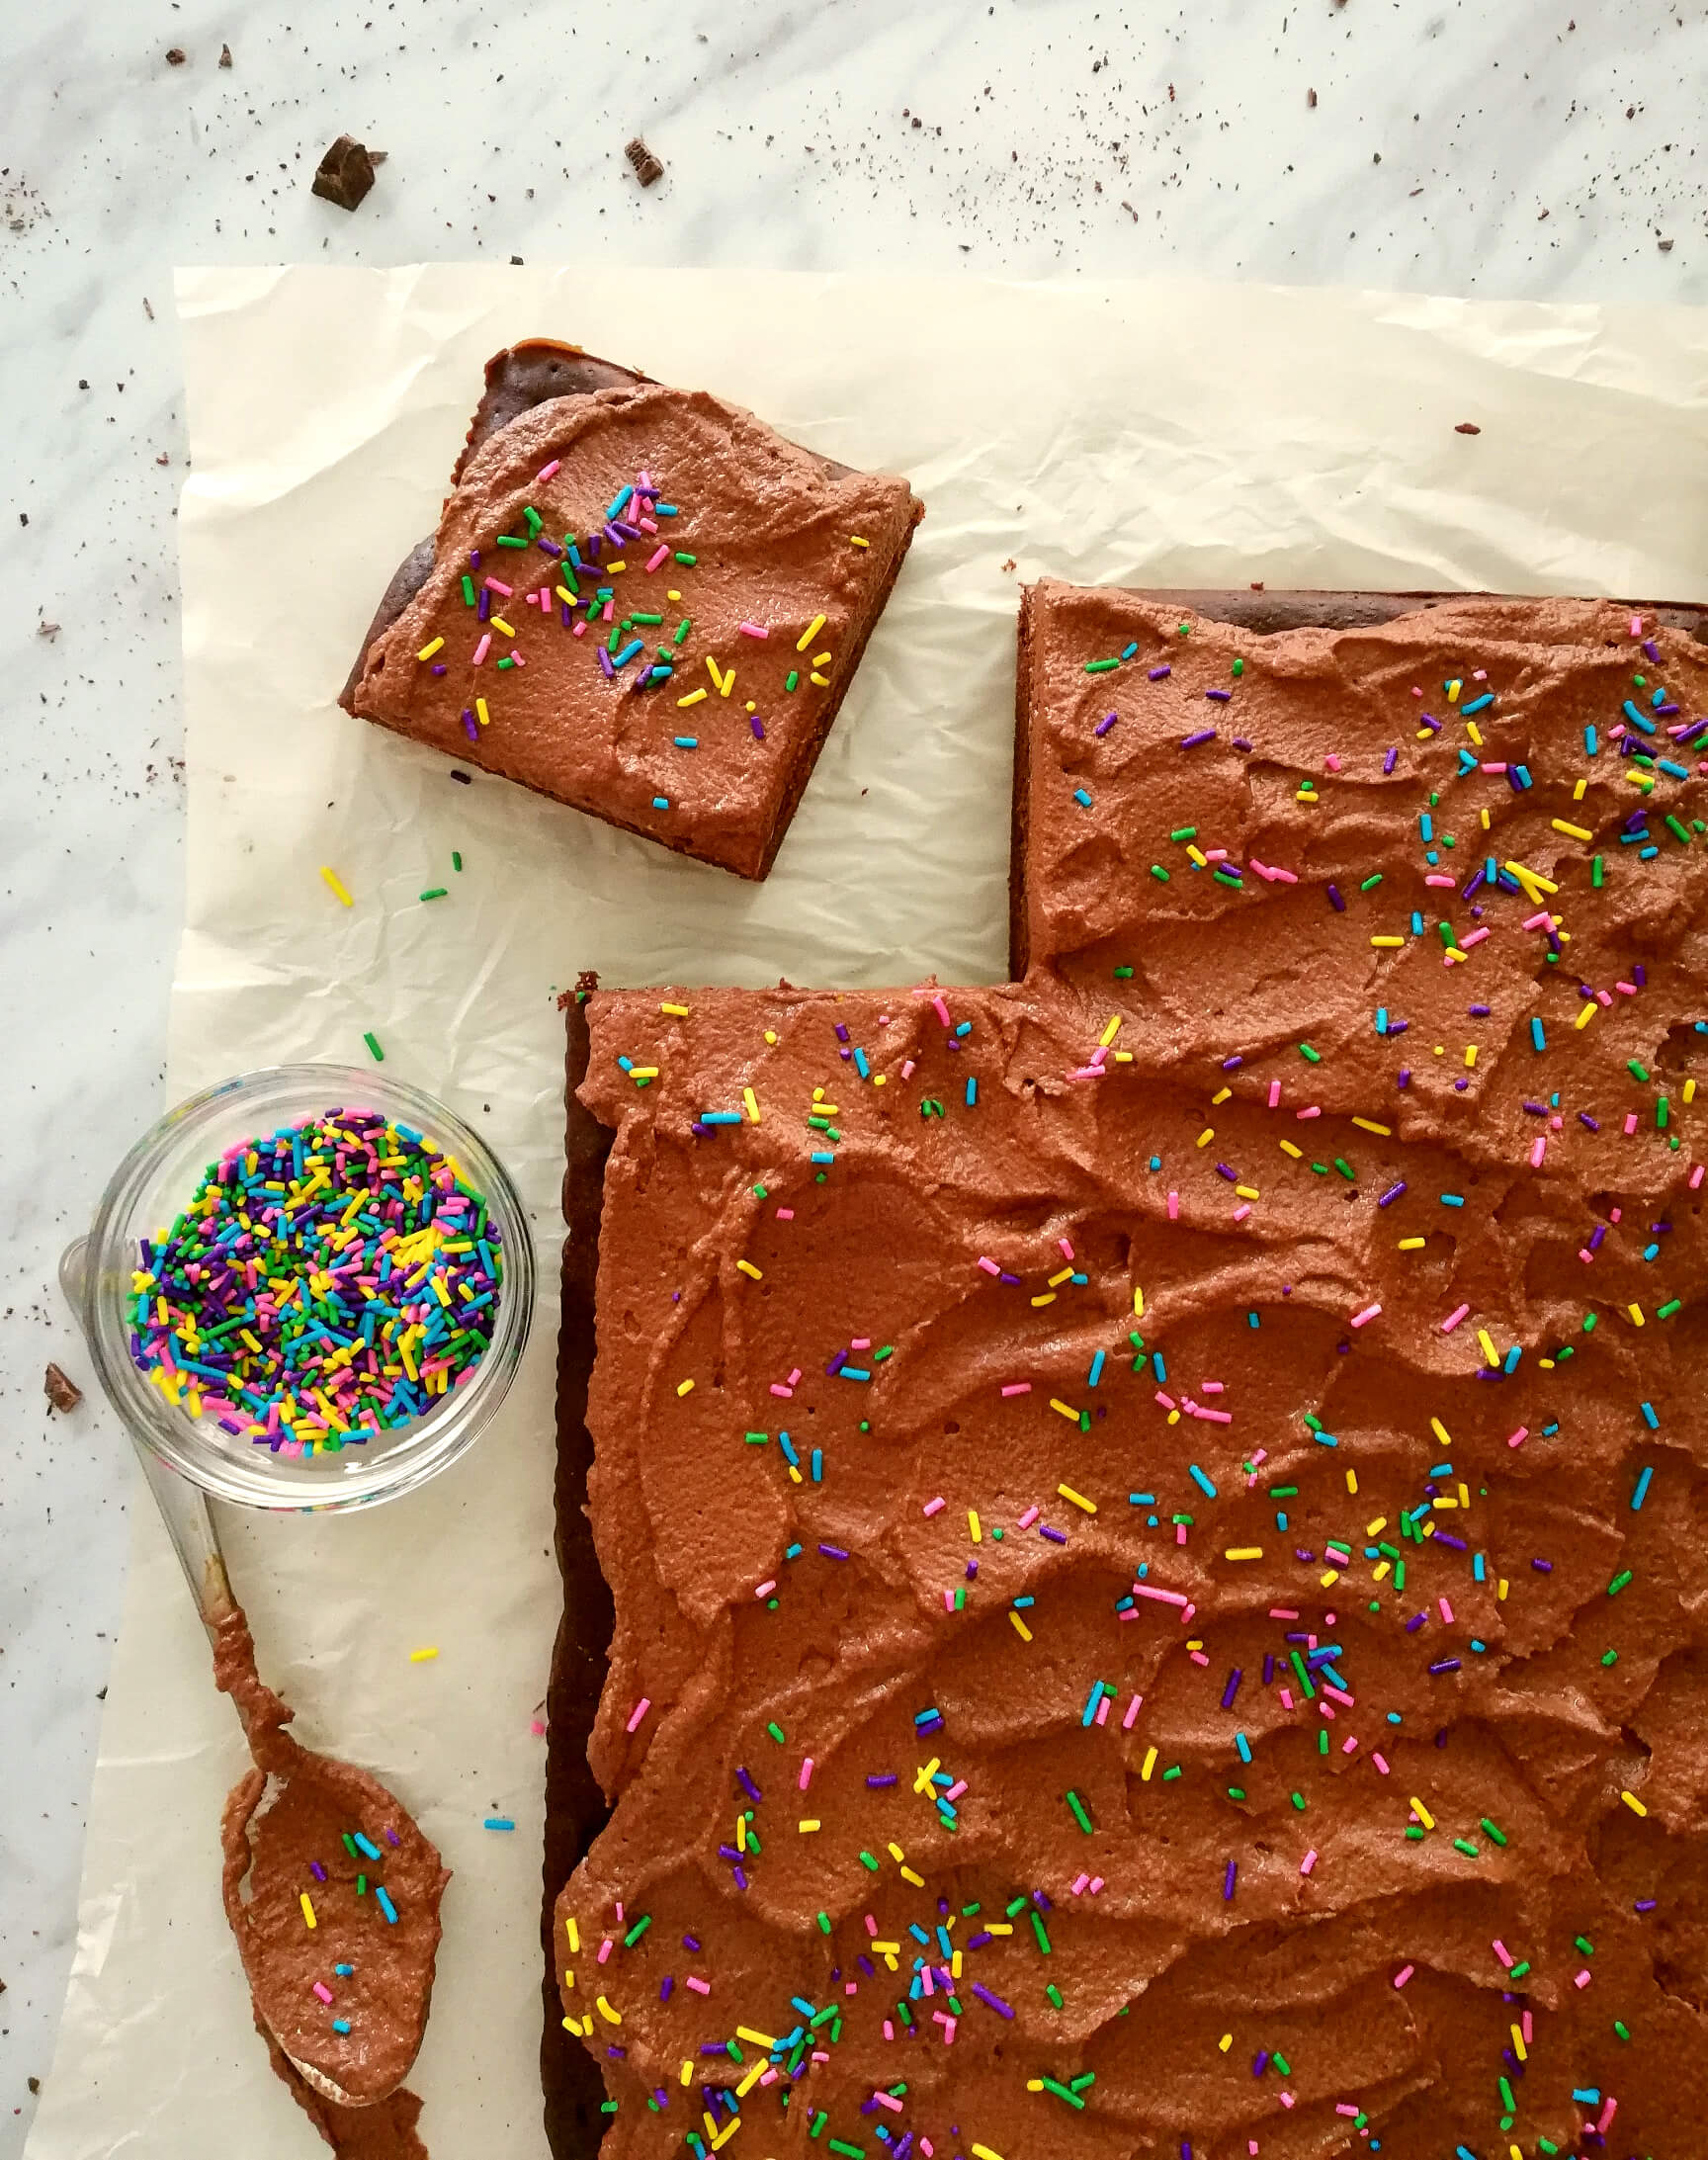 Frosted Chocolate Sheet Cake